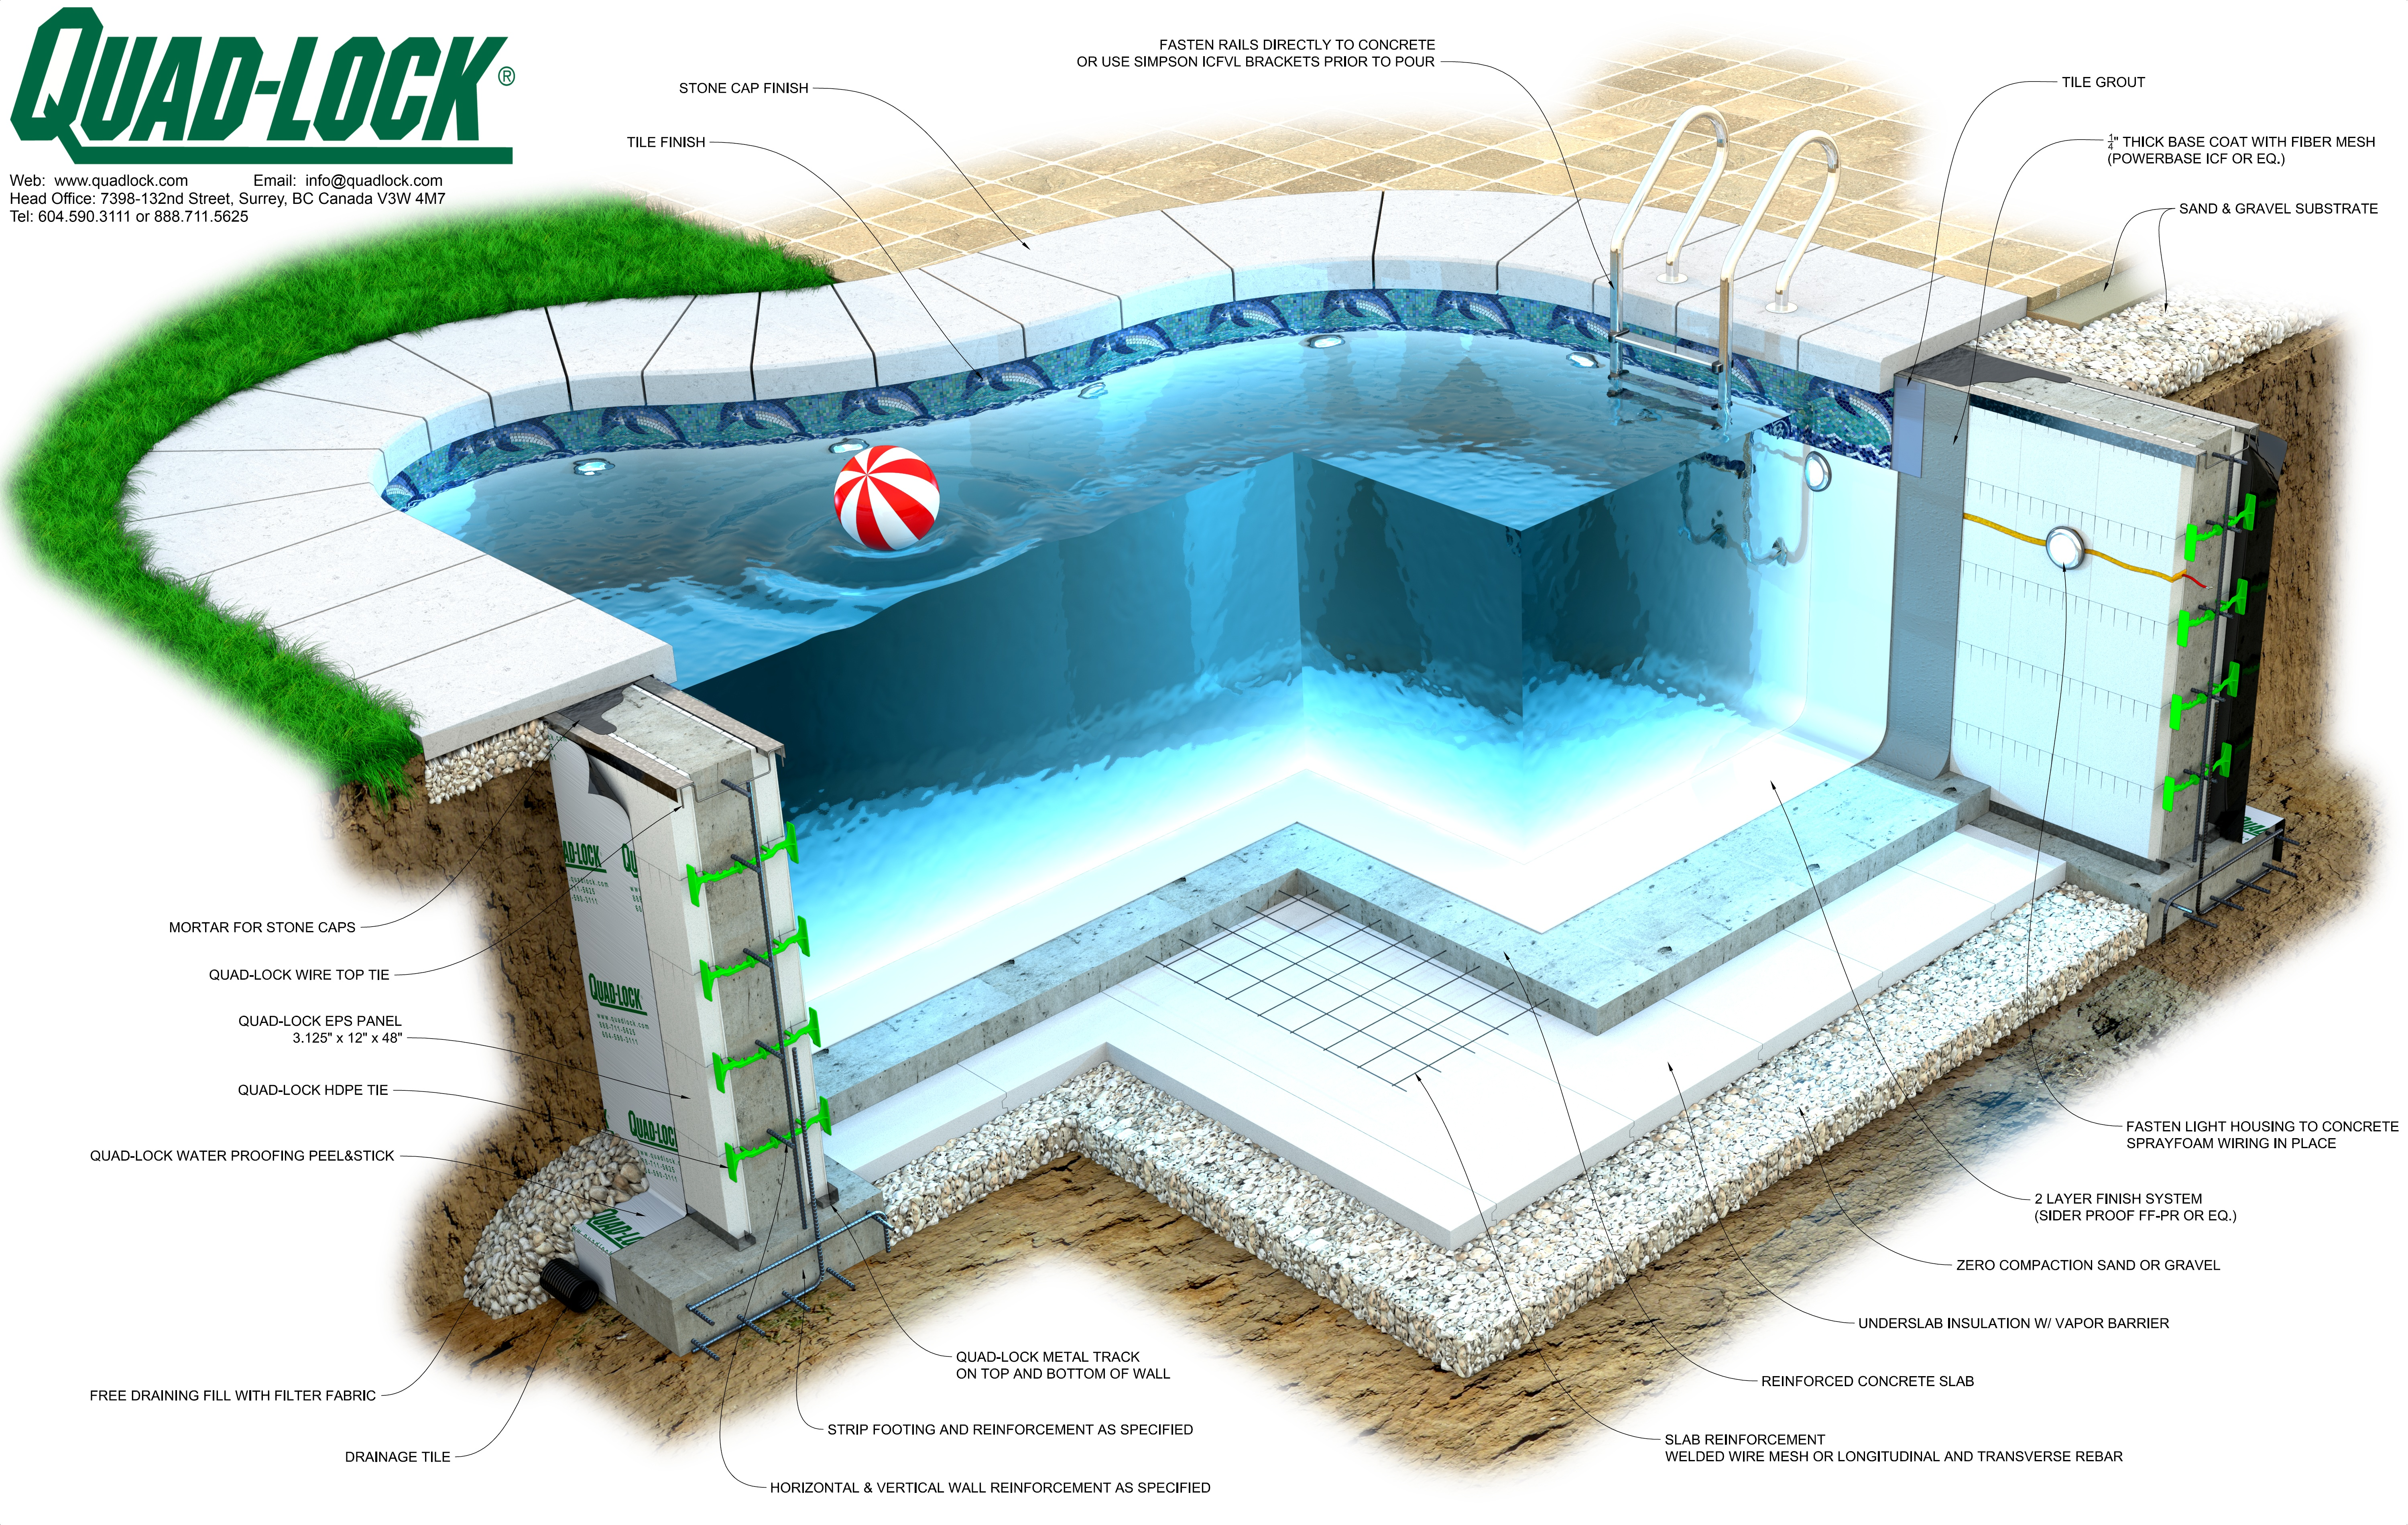 Test sider crete inc sider crete inc for Icf pool construction